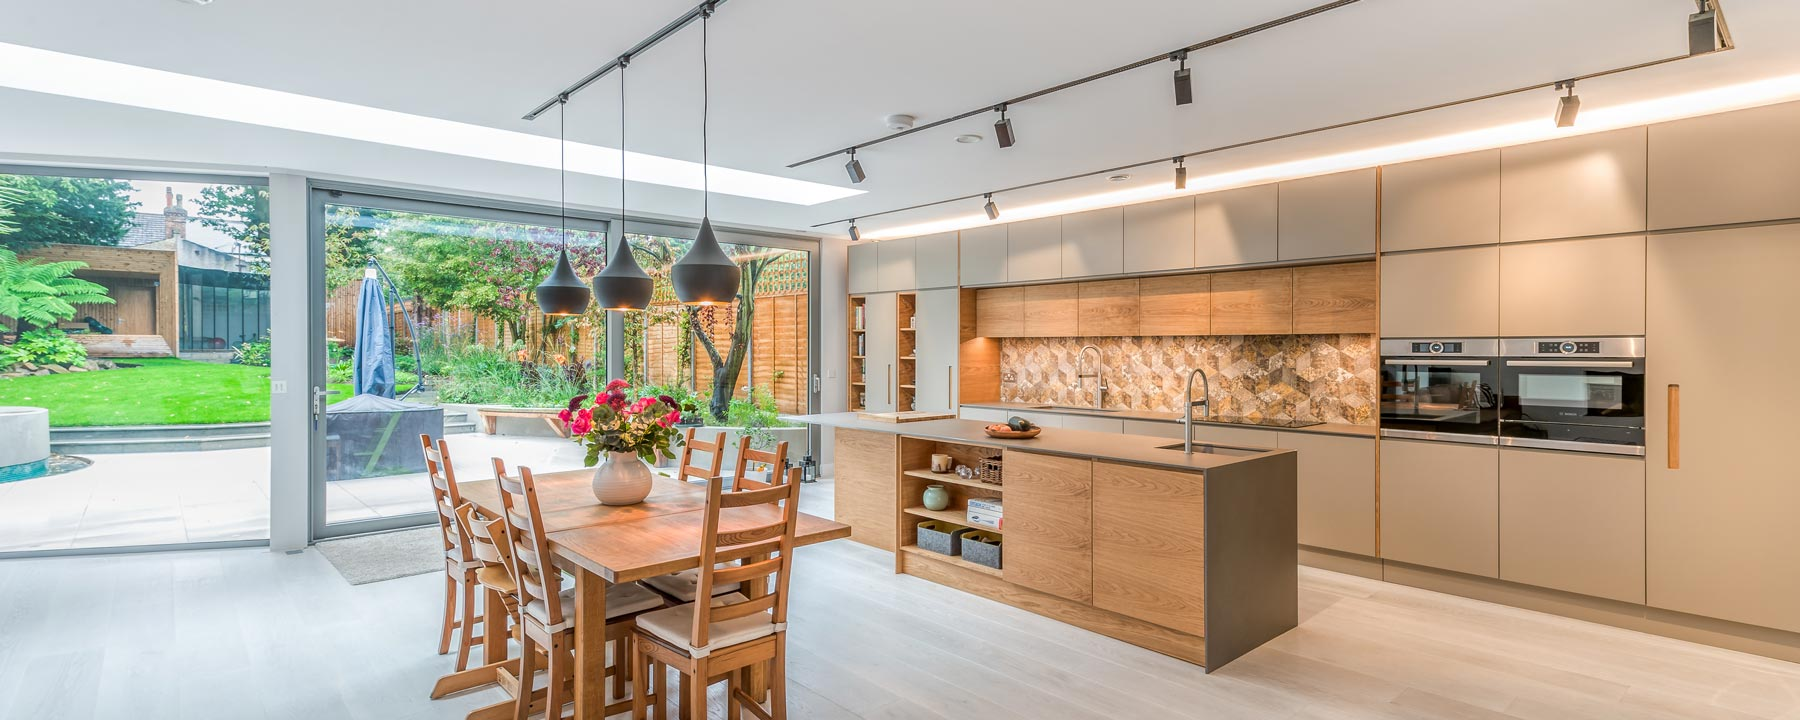 open plan kitchen and house extension in London by Extend a Space